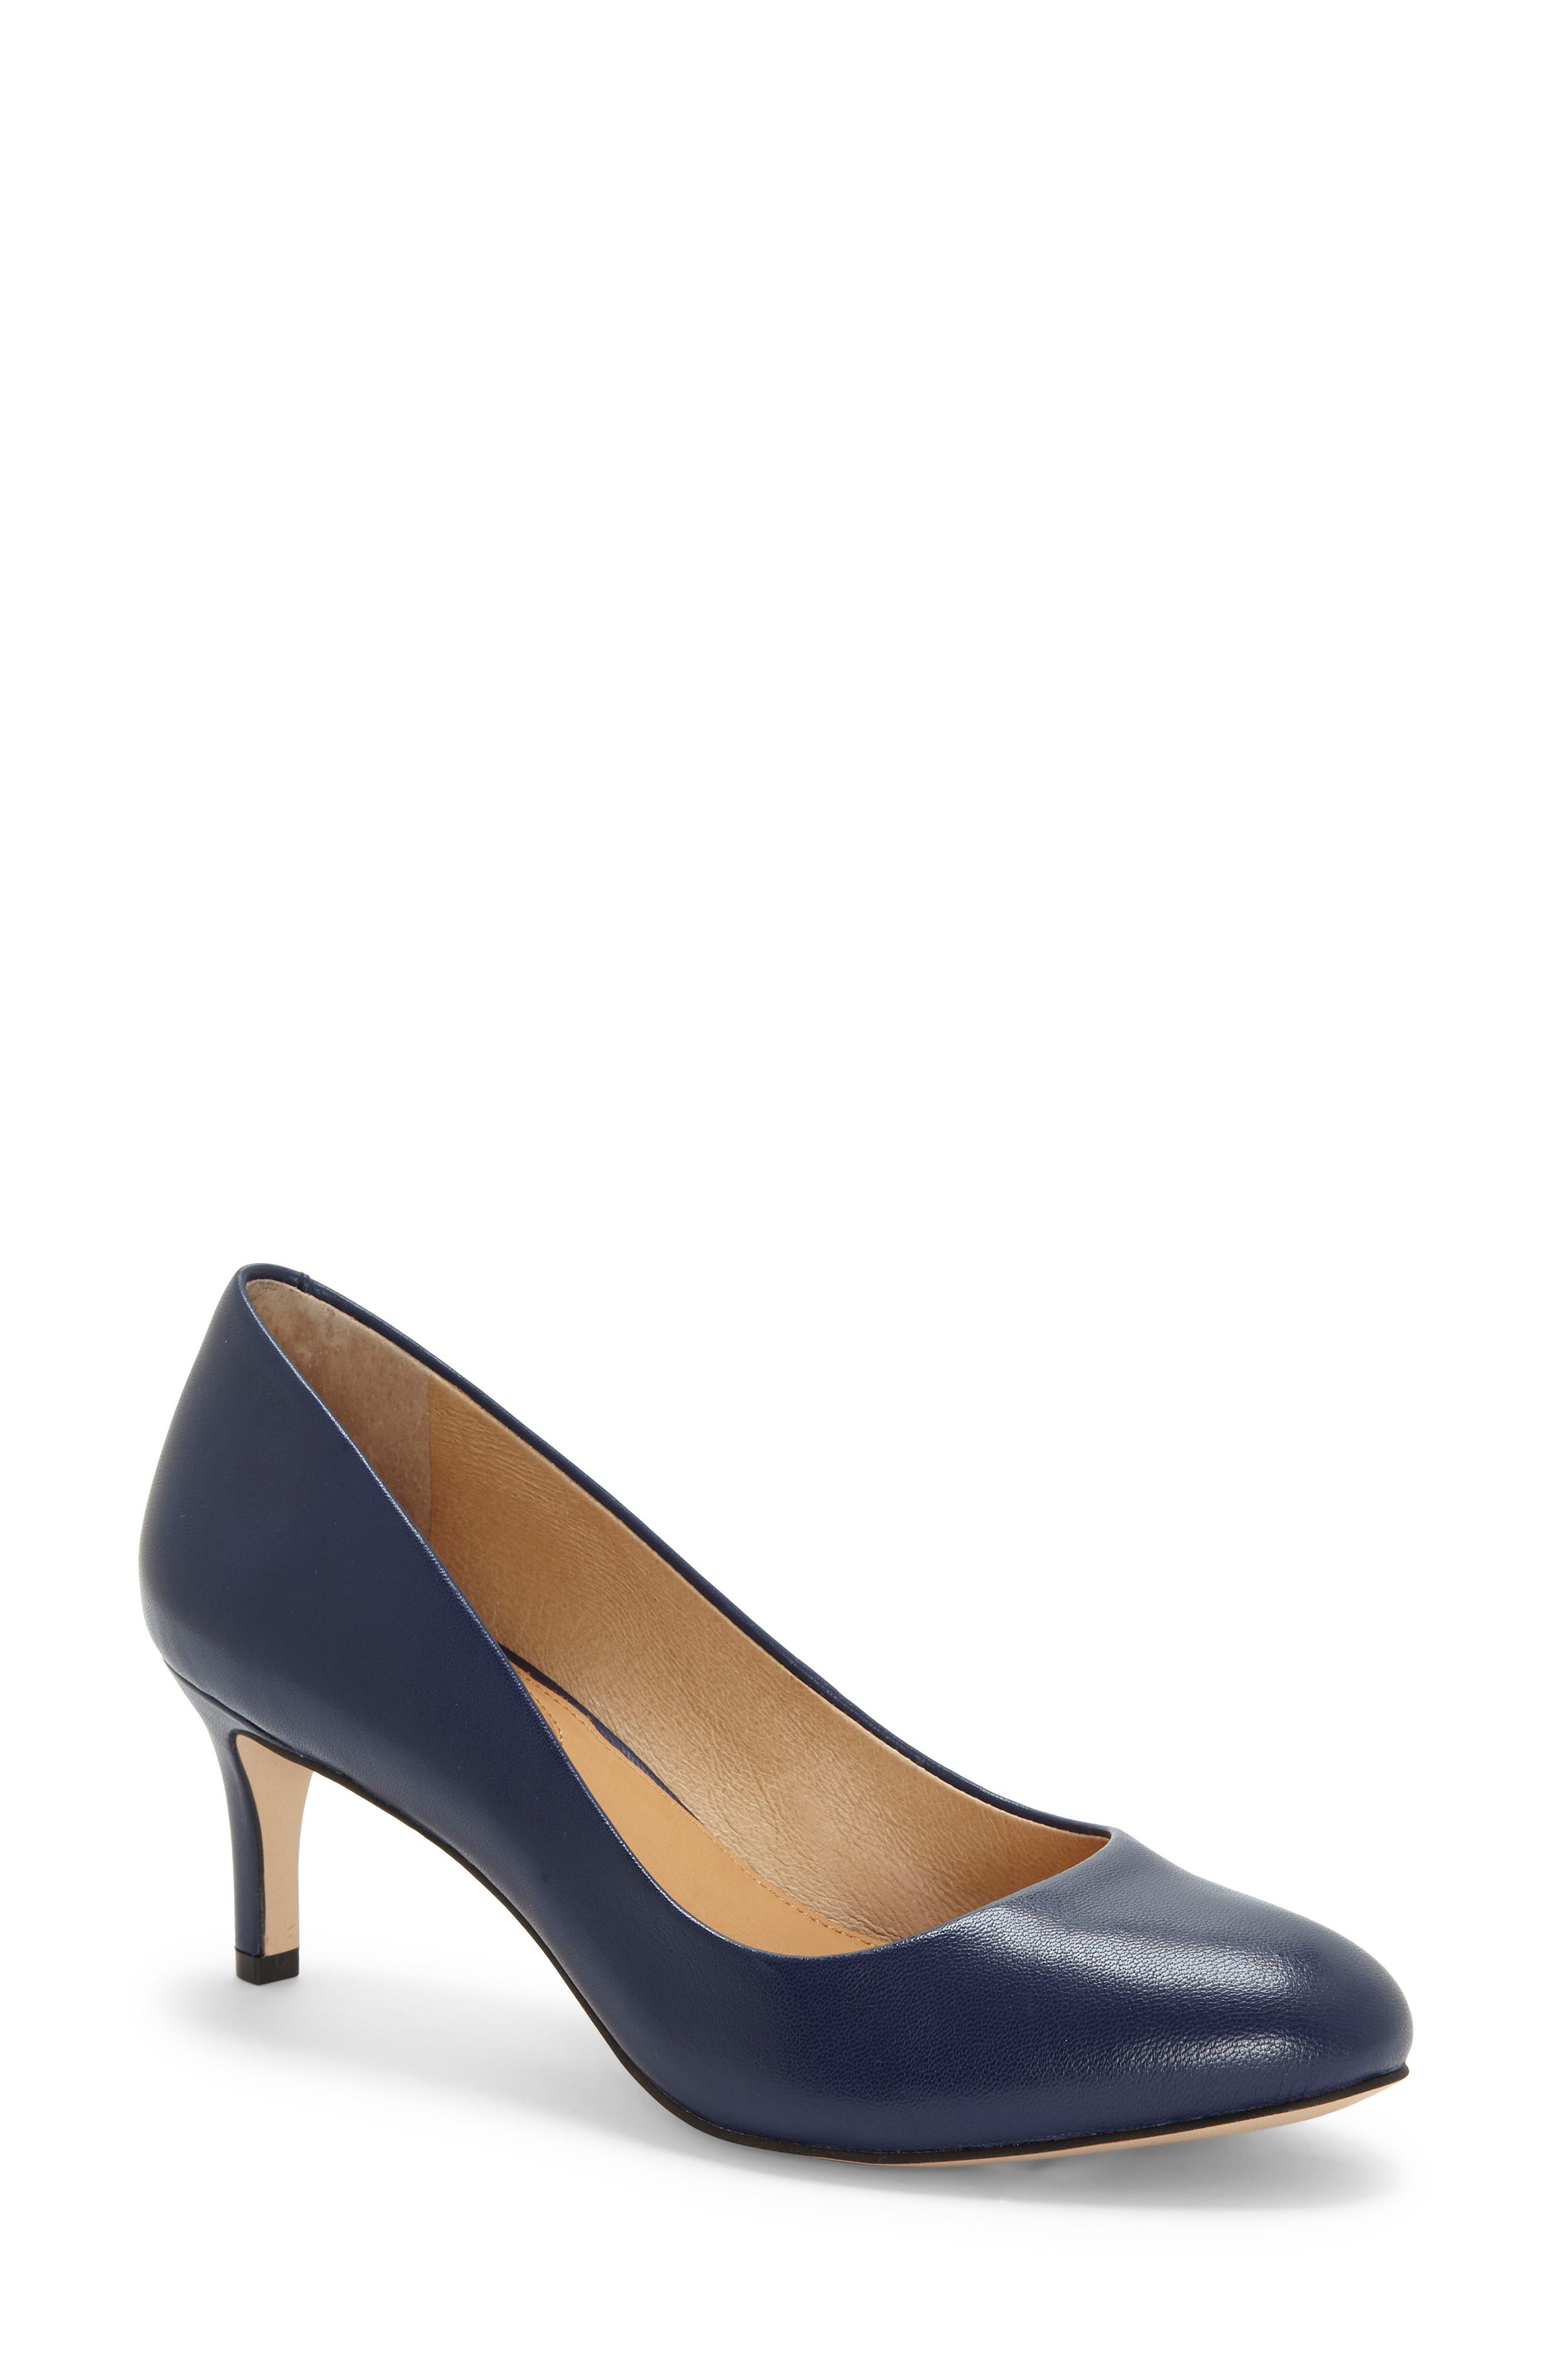 A timeless, go-to pump with a walkable heel is wonderfully comfortable thanks to gel and foam cushioning in the footbed. Style Name: Cc Corso Como Linnden Pump (Women). Style Number: 5494744 1. Available in stores.